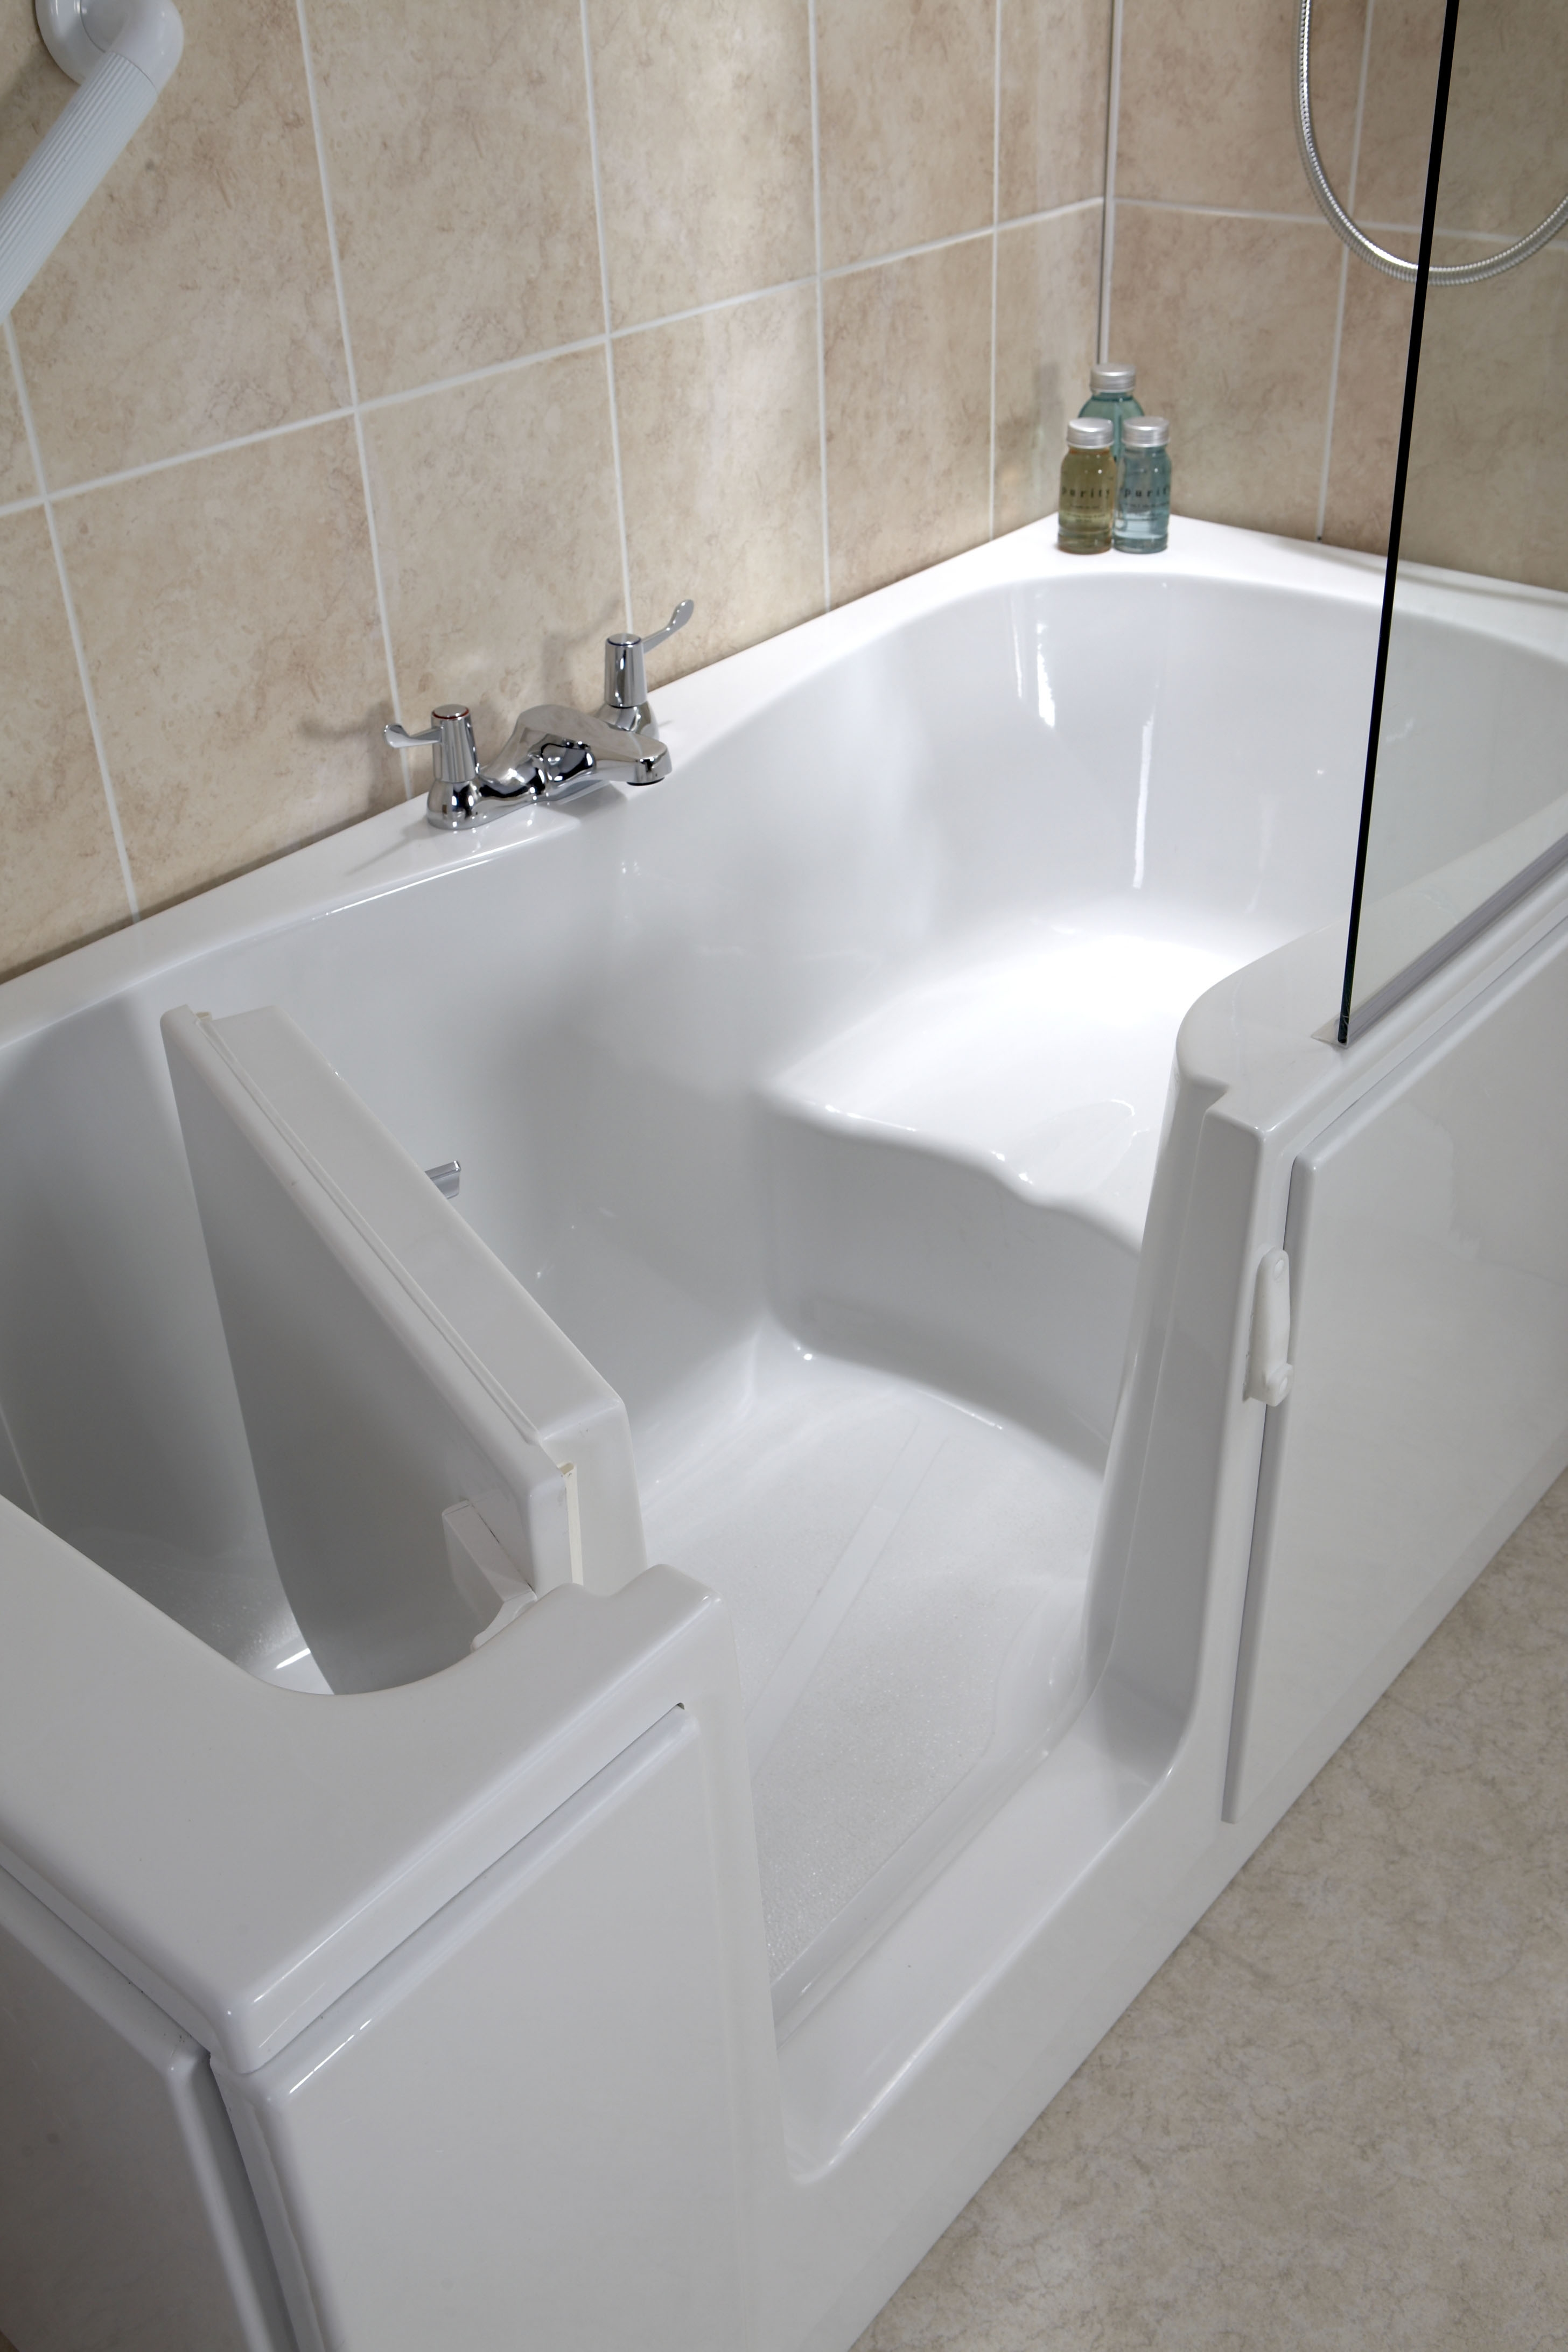 Jet Shower Jubilee Easy Access Shower Bath - Only £1799 From